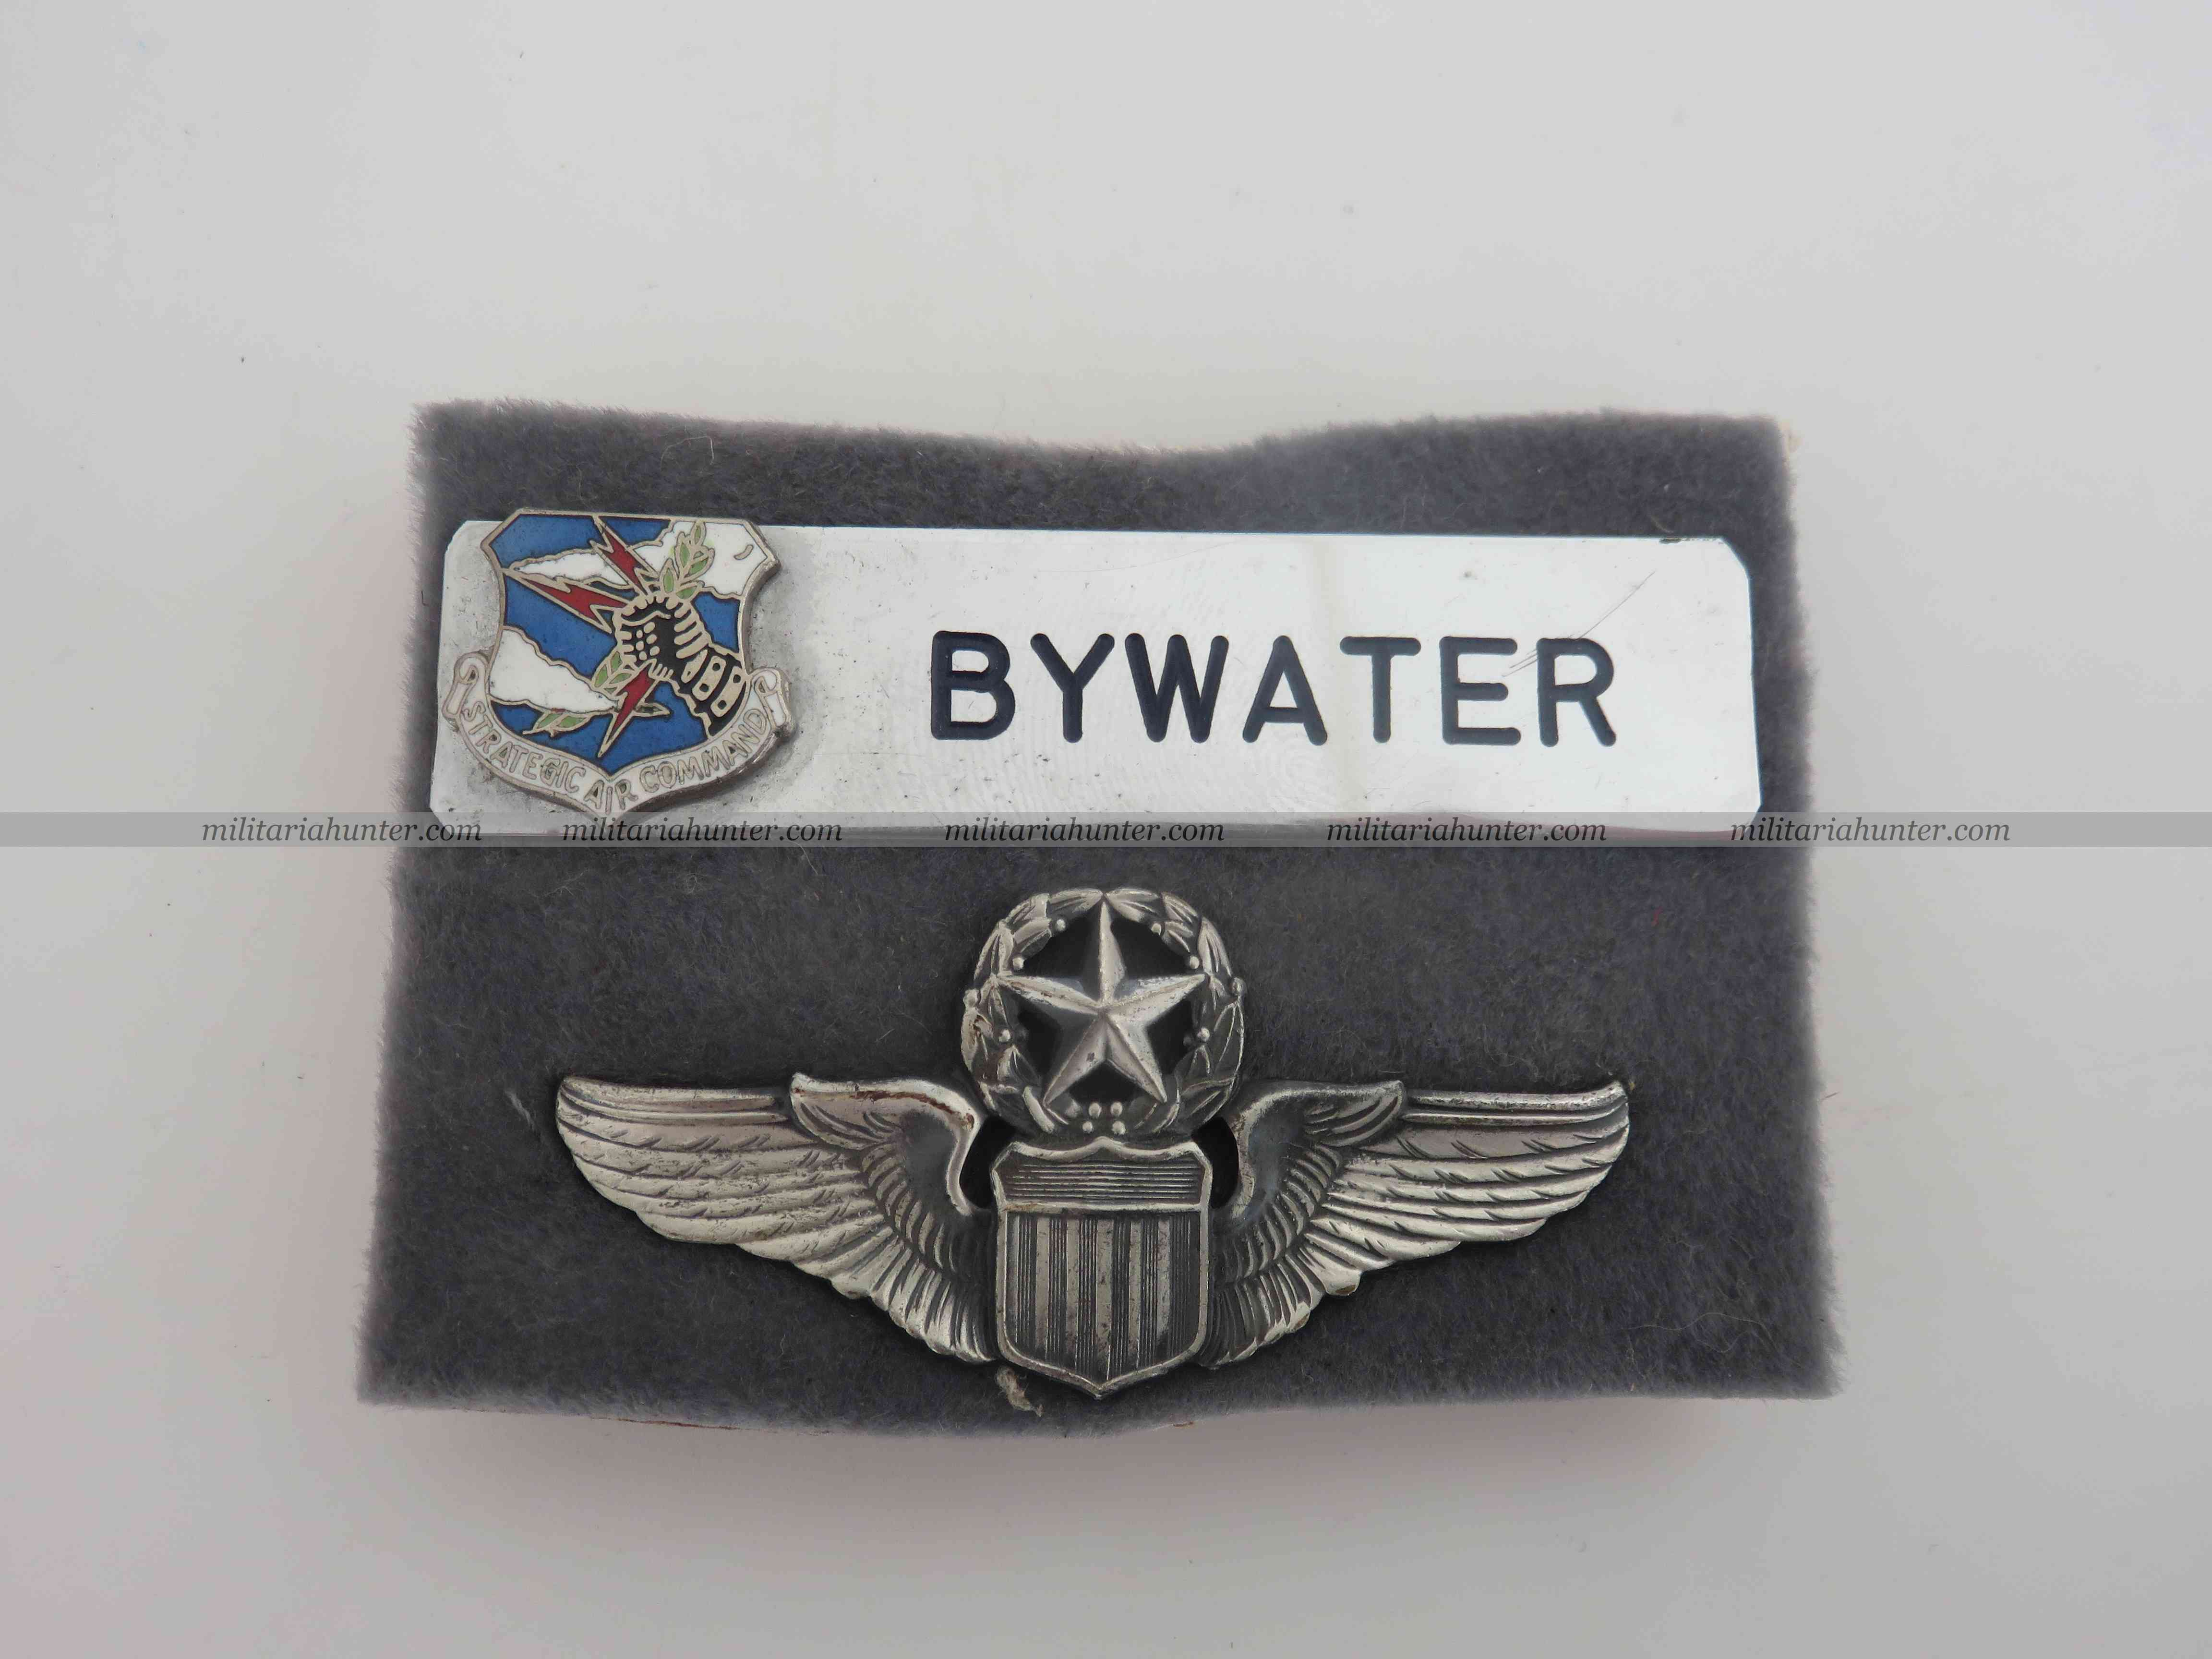 Militaria Hunter   Achat Vente Estimation Militaria ww1 ww2 Brigadier General Bywater pilot wings and named crest strategic air command